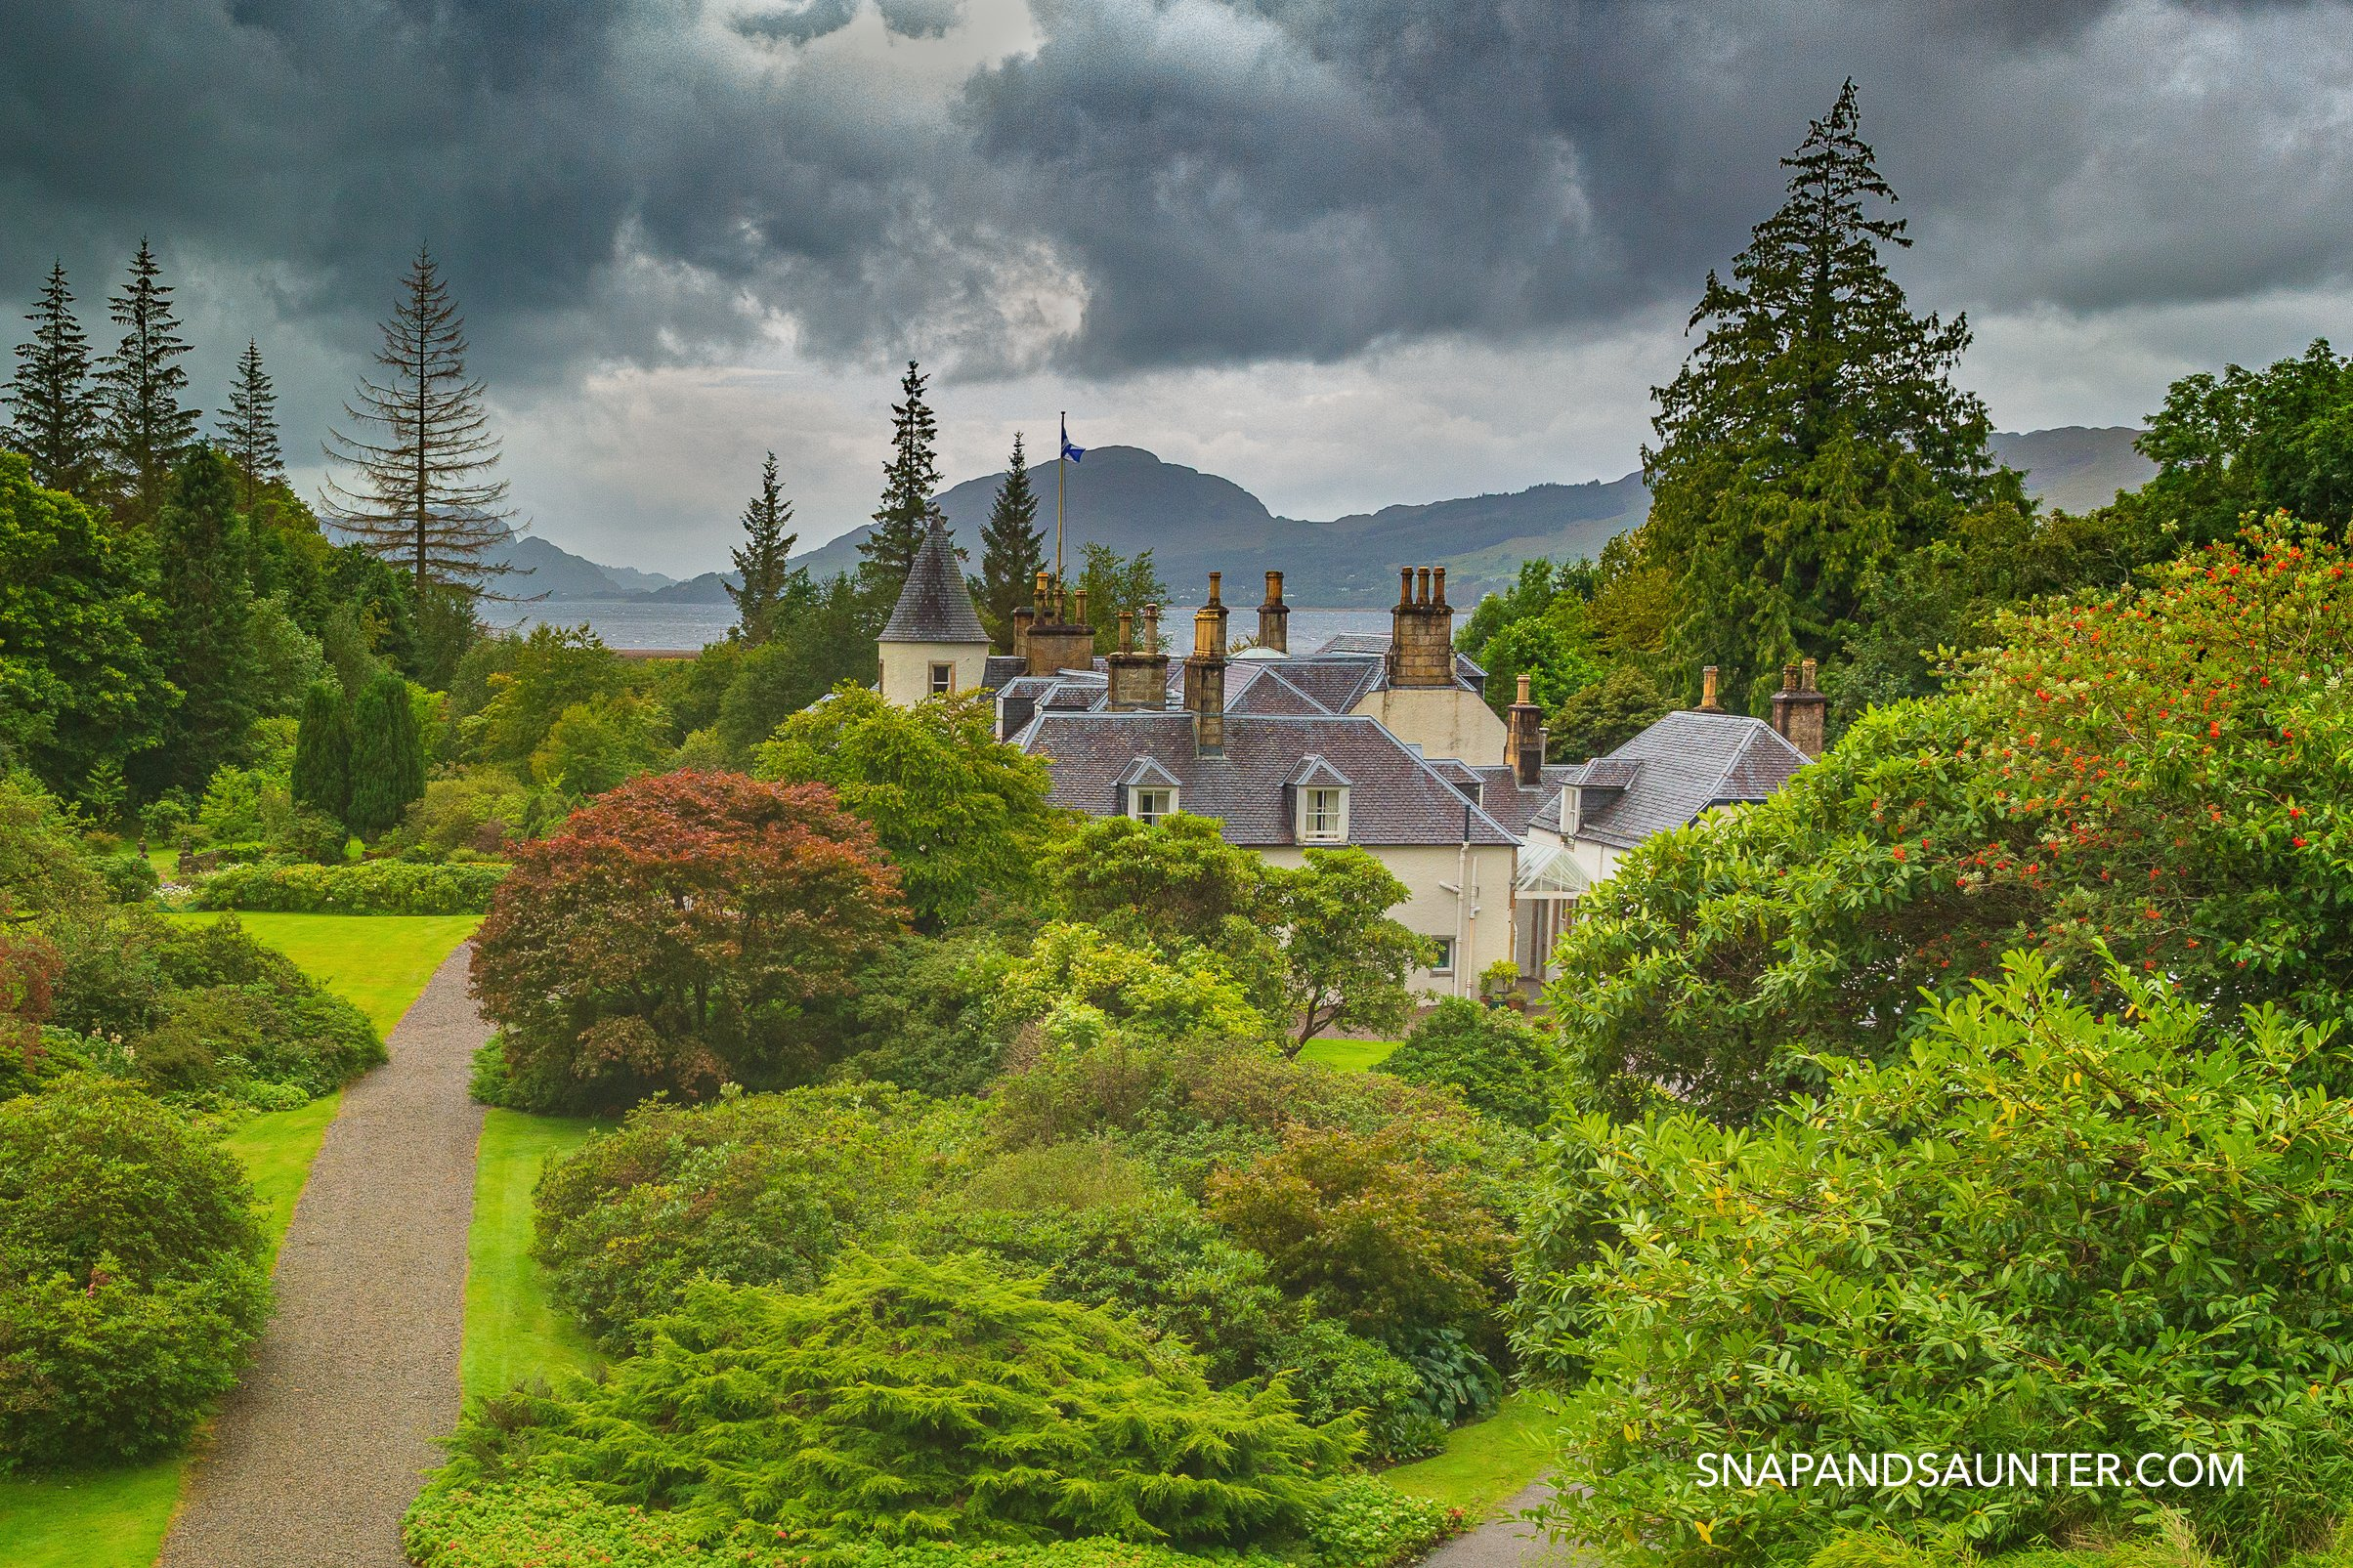 Attadale Garden on North Coast 500 in Scotland